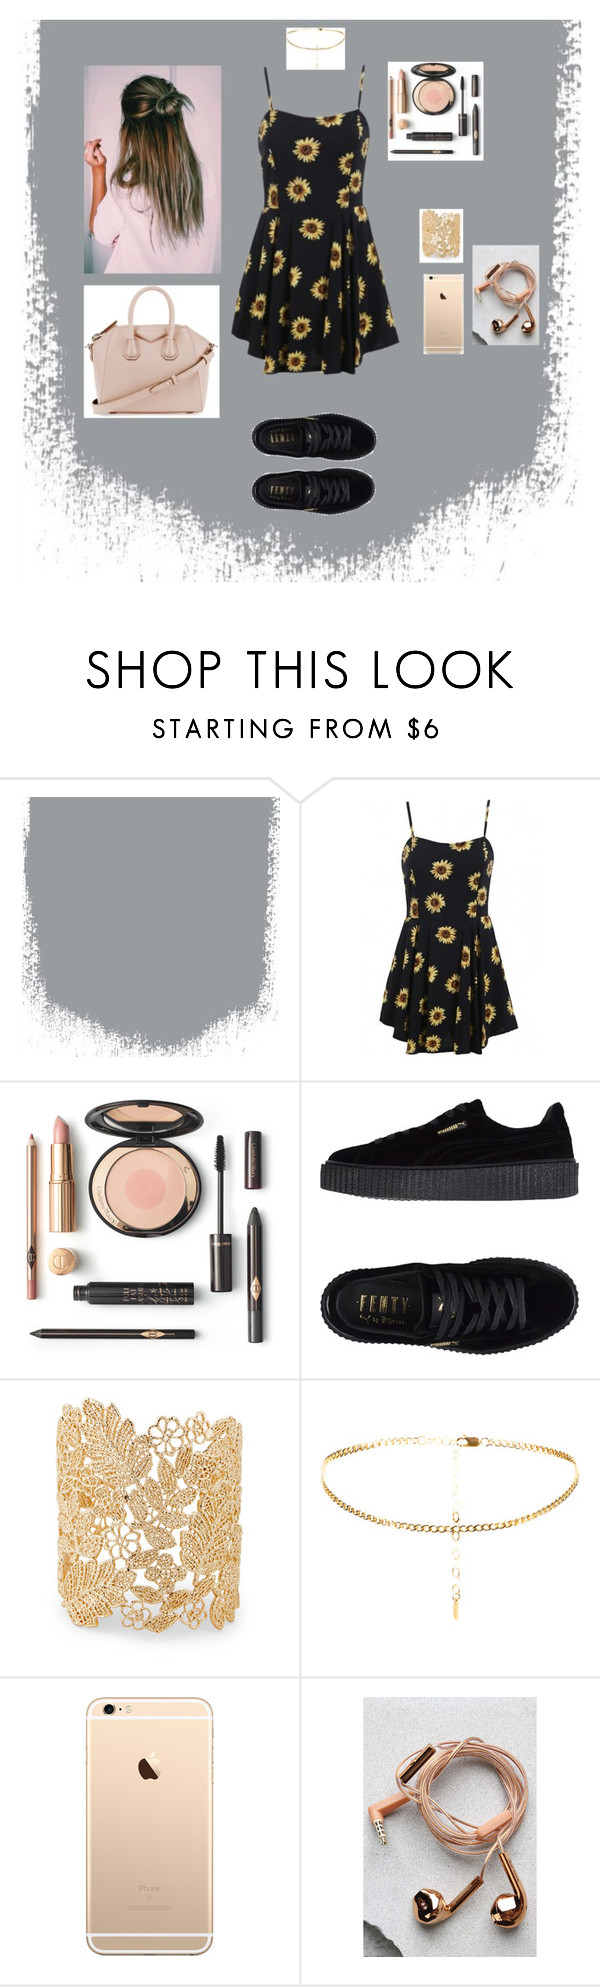 """Untitled #780"" by julia-m-a-r-v-e-l ❤ liked on Polyvore featuring Puma, Sole Society, Happy Plugs and Givenchy"